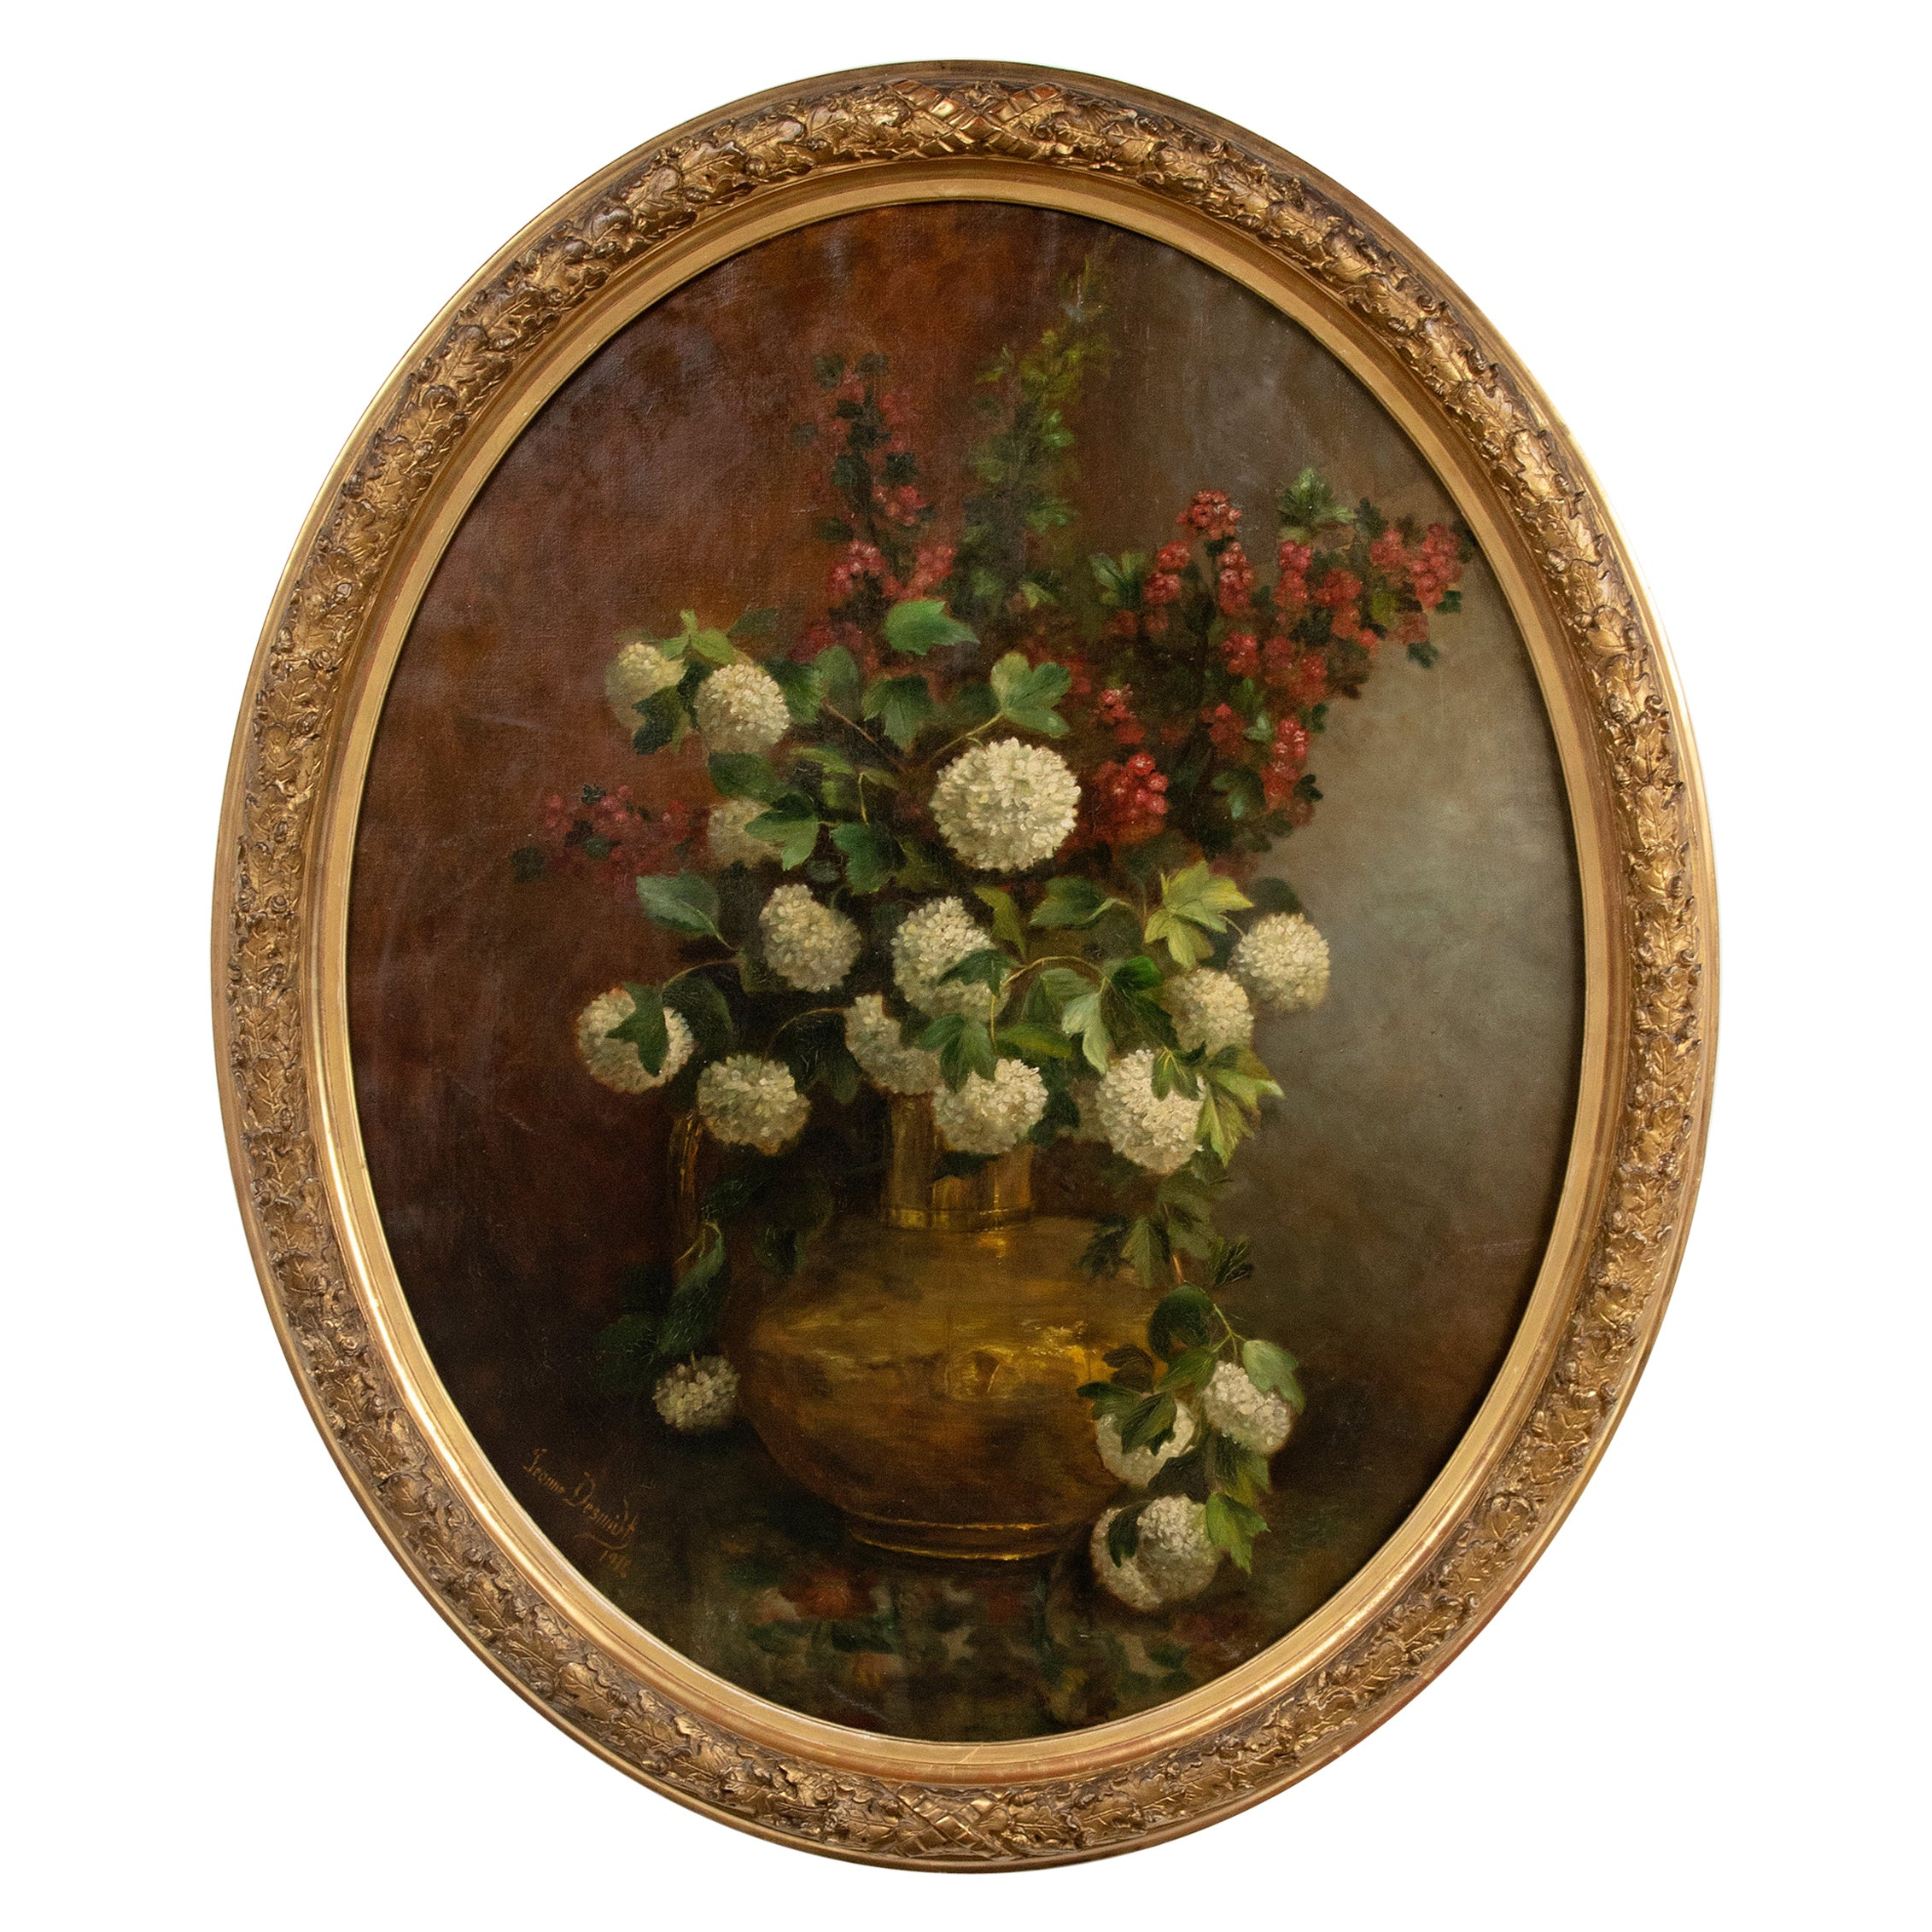 Early 20th Century Oval Oil Painting Flower Still Life by Jeanne Desmidt